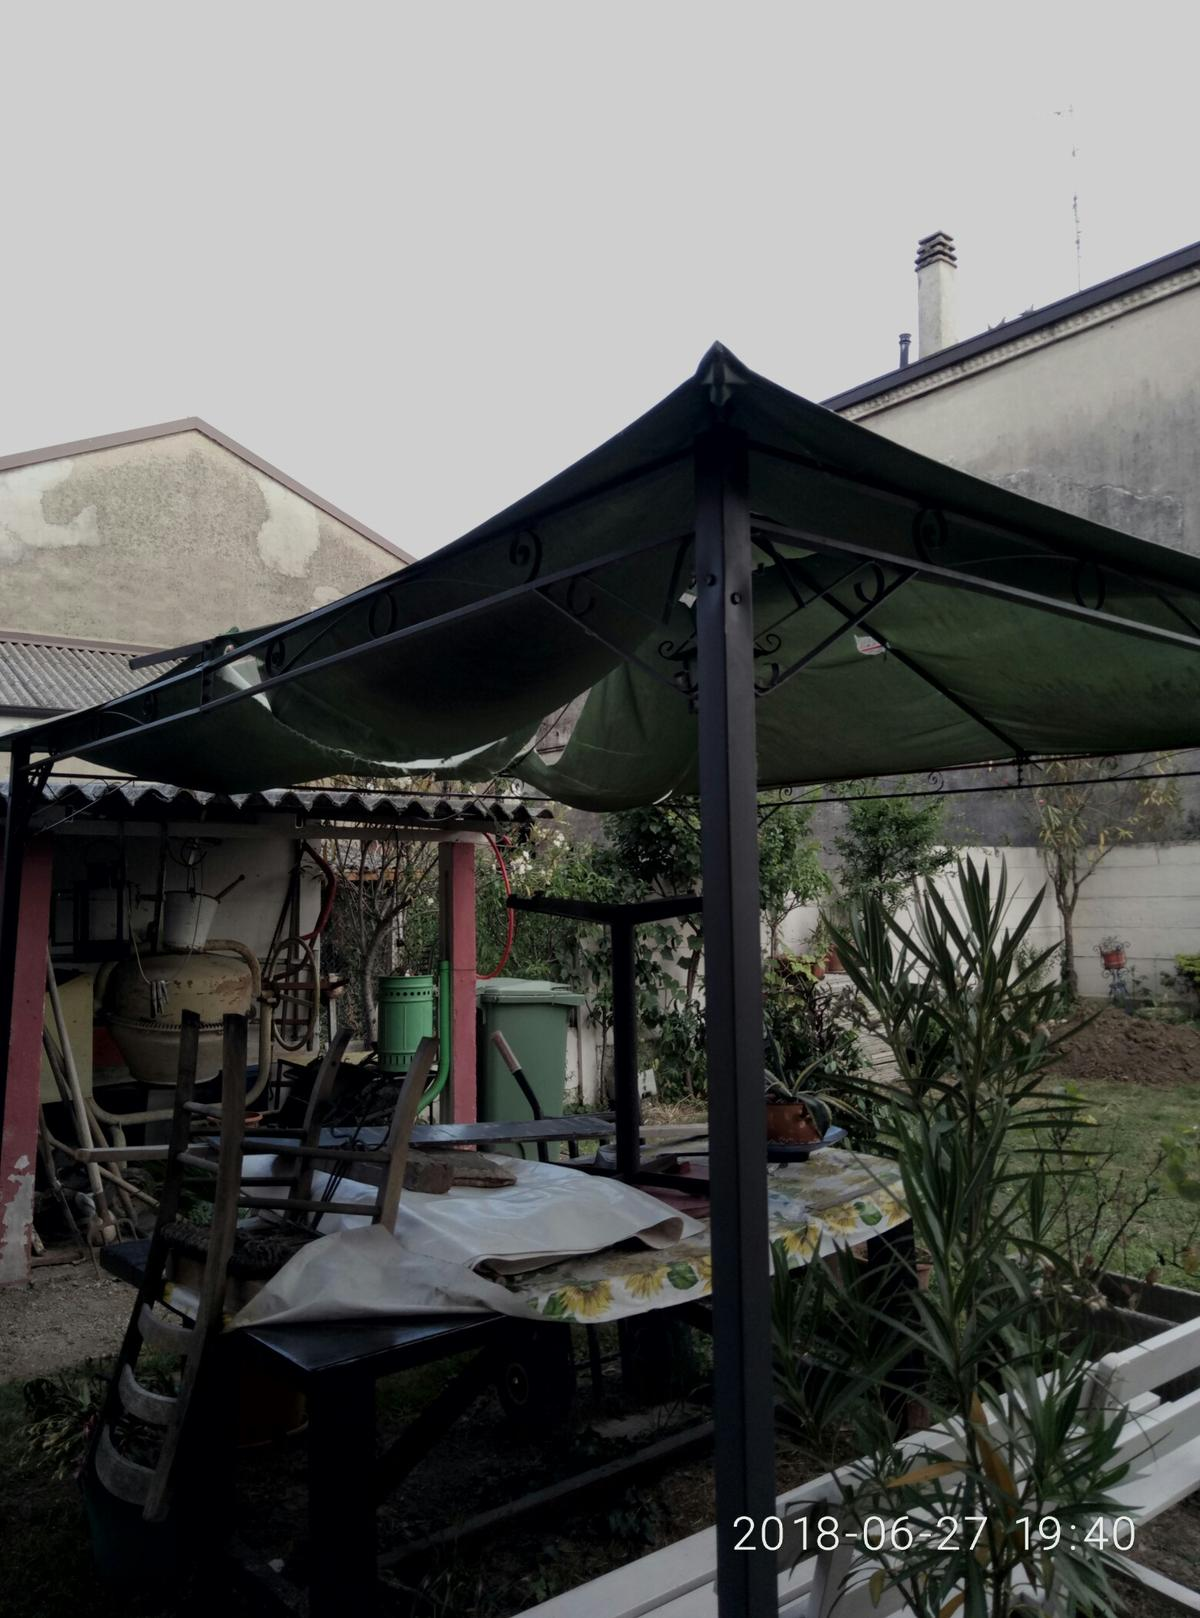 Vendo Gazebo In Ferro.Vendo Gazebo In Ferro Con Telo Rotto 3x3 In 20816 Ceriano Laghetto